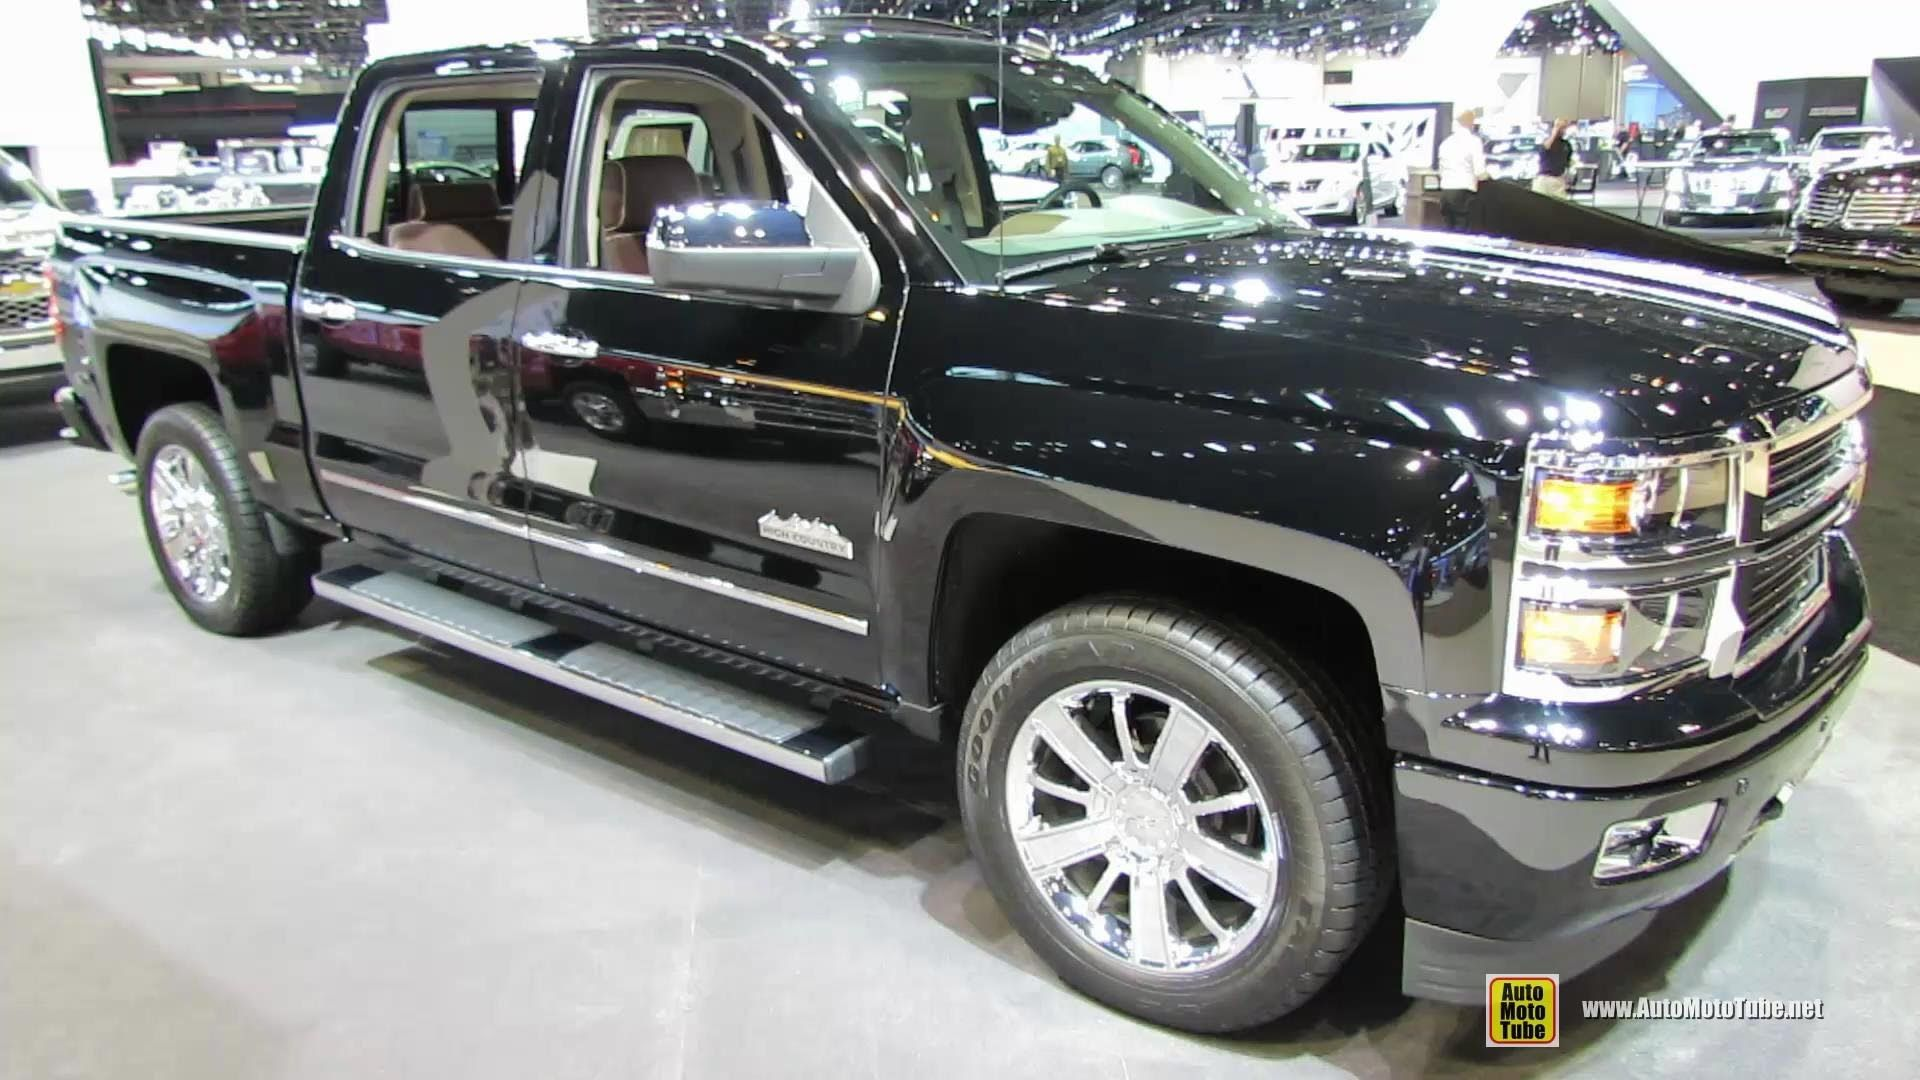 2015 Chevy Silverado 1500 High Country Black Popular Cars